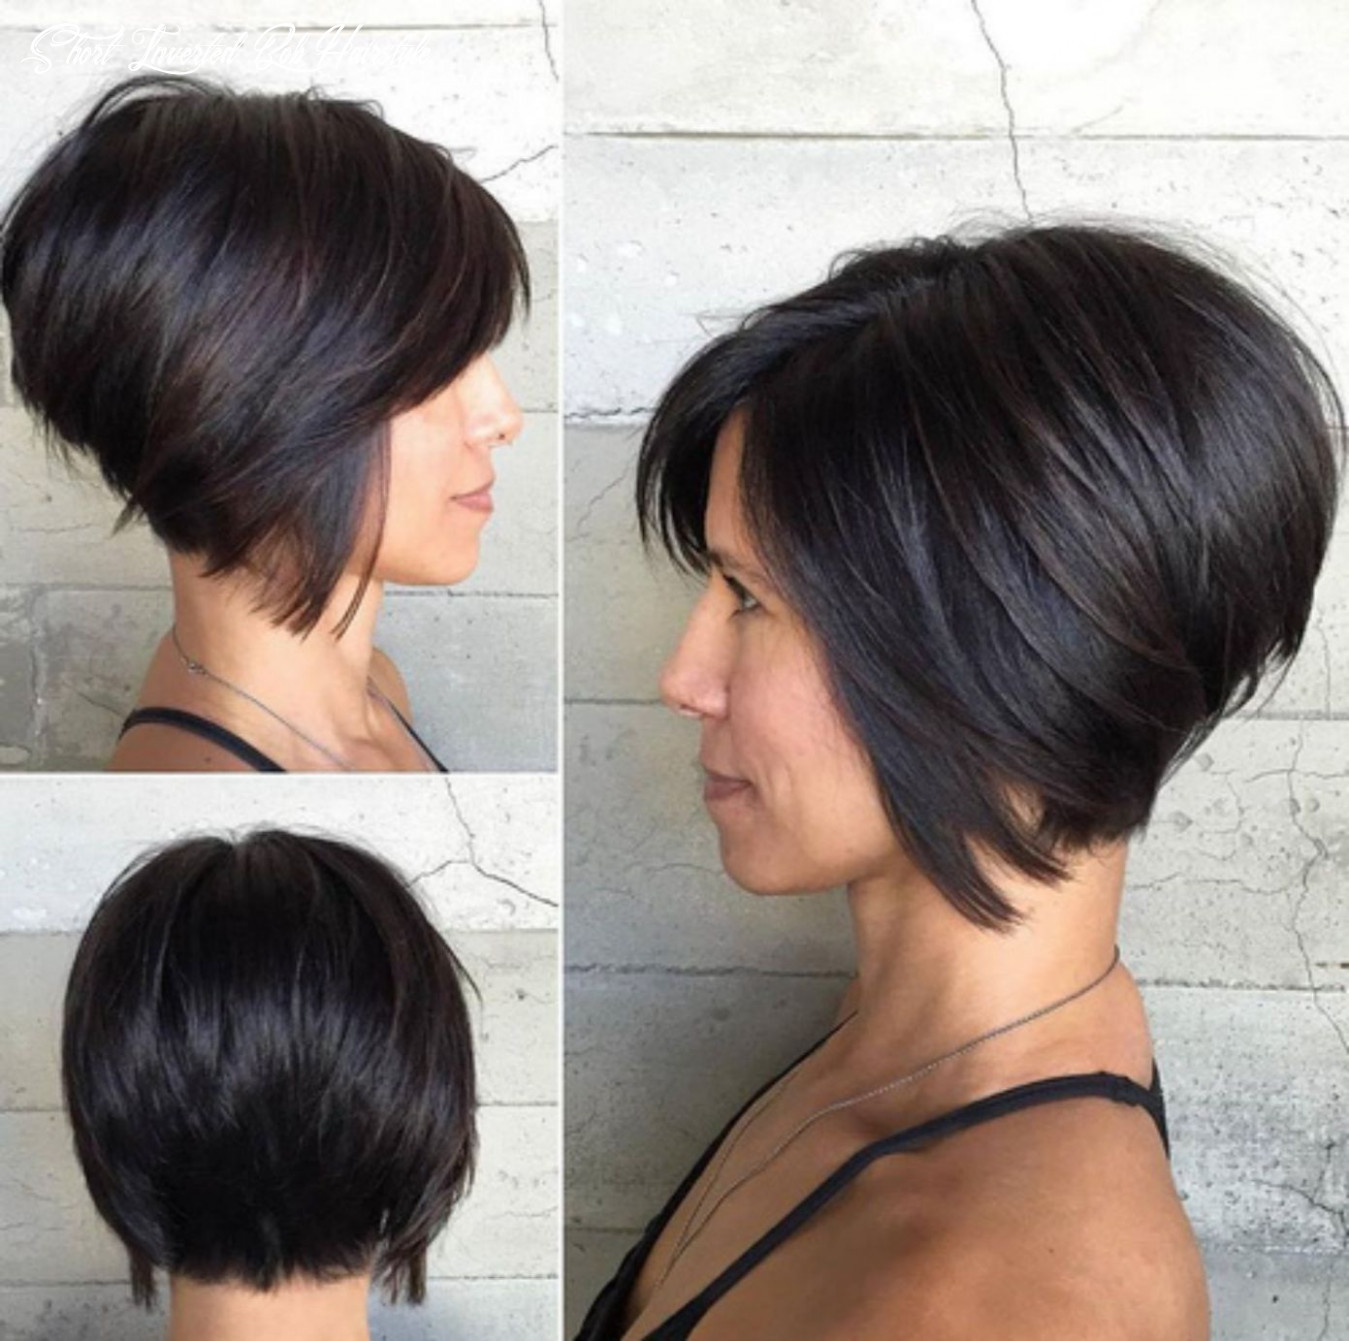 Pin on female hair style short inverted bob hairstyle